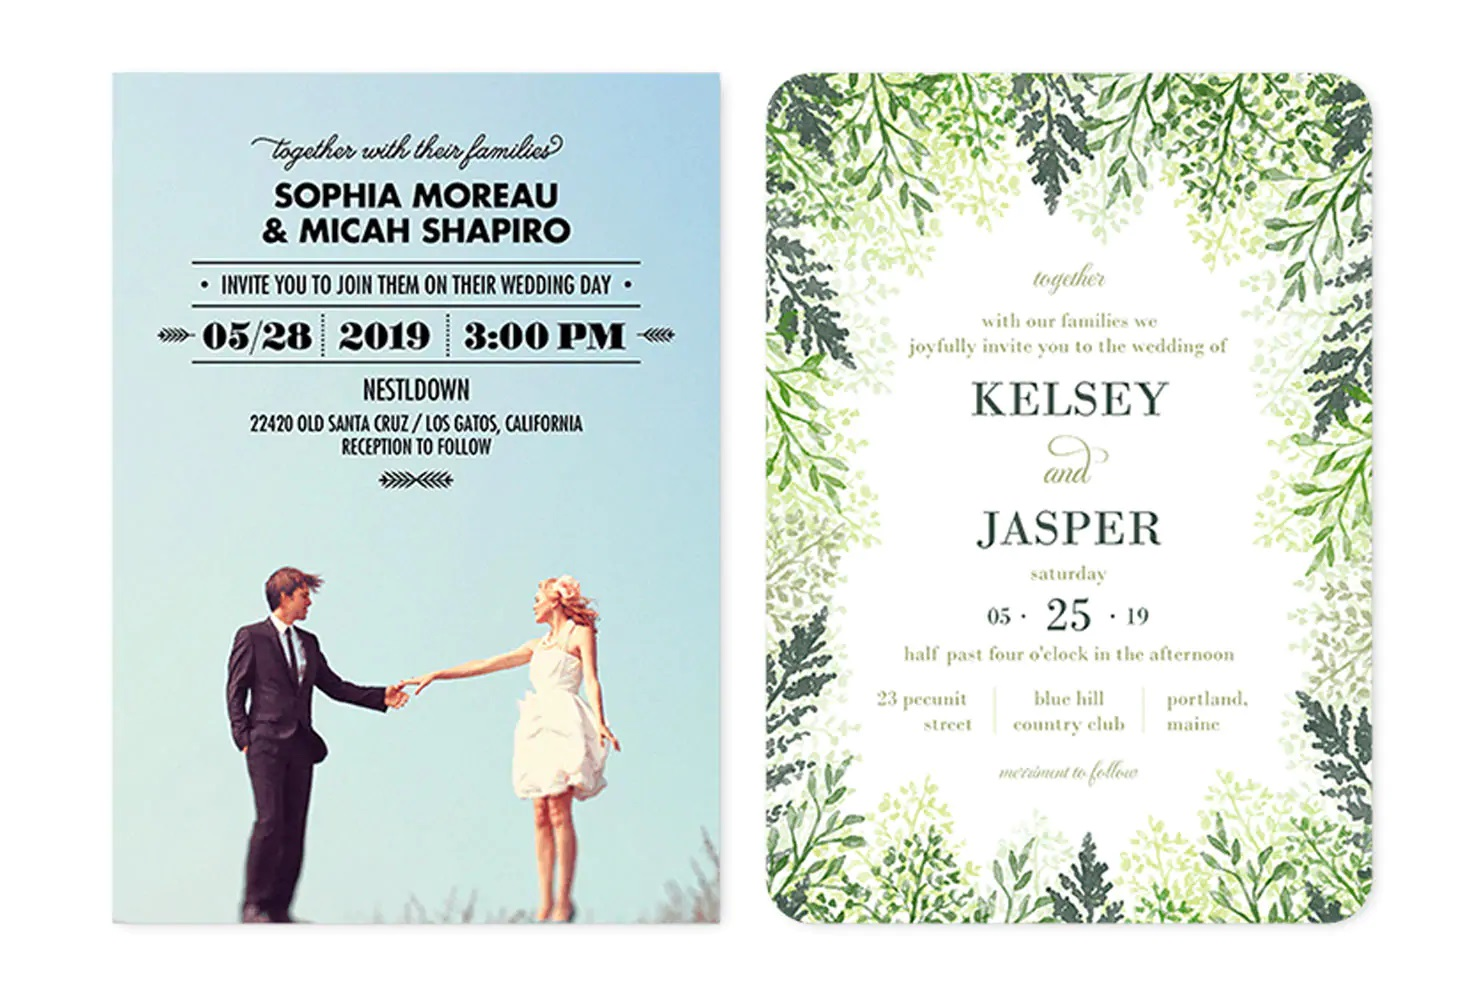 010 Awesome Wedding Invite Wording Template Idea  Templates Chinese Invitation Microsoft Word From Bride And Groom Example InvitingFull